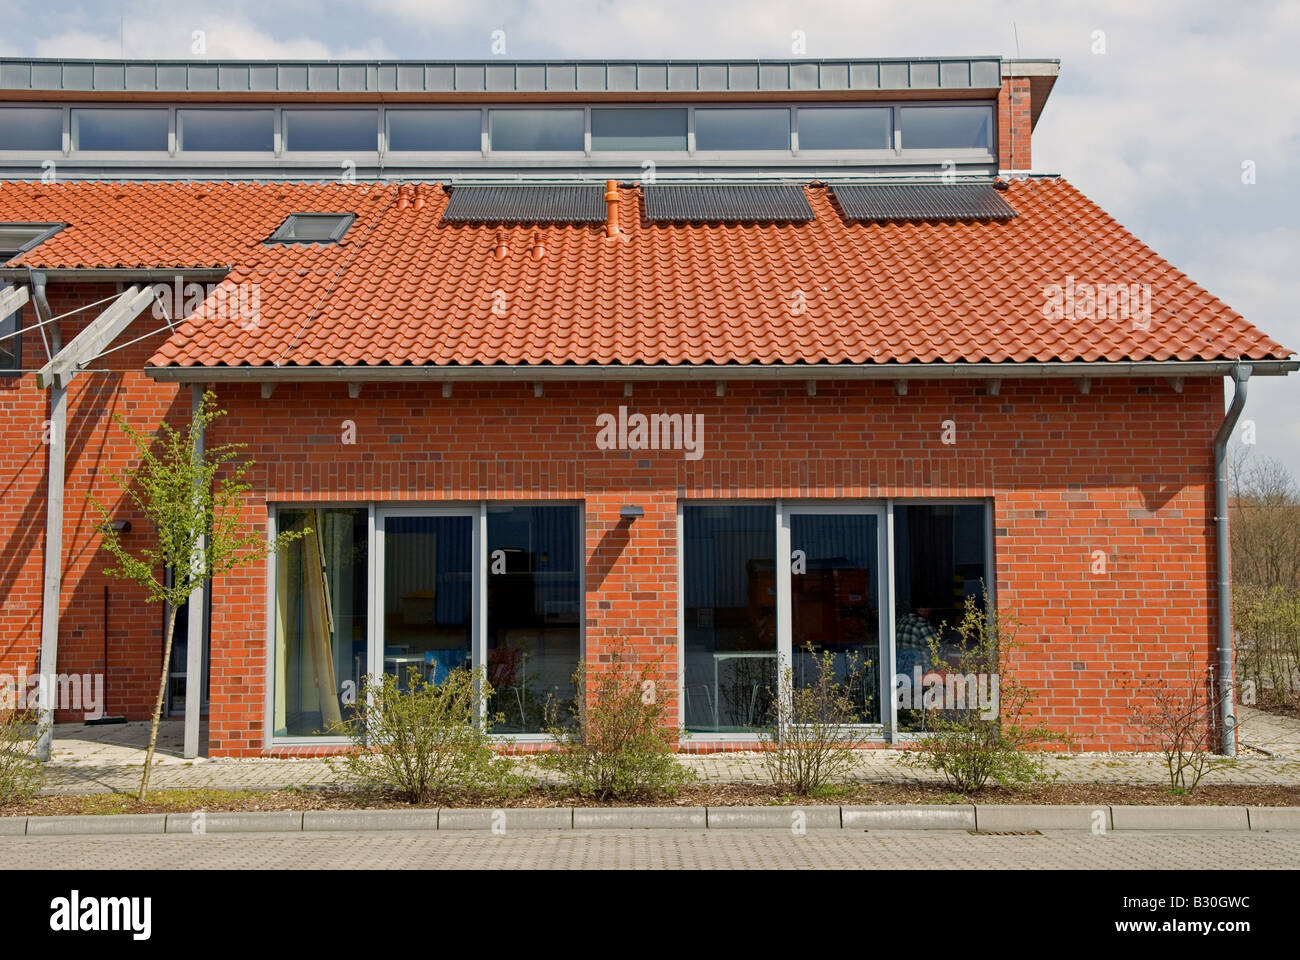 Environmentally friendly local council offices, with rainwater harvesting and solar heating, Oldenburg, Lower Saxony, Stock Photo